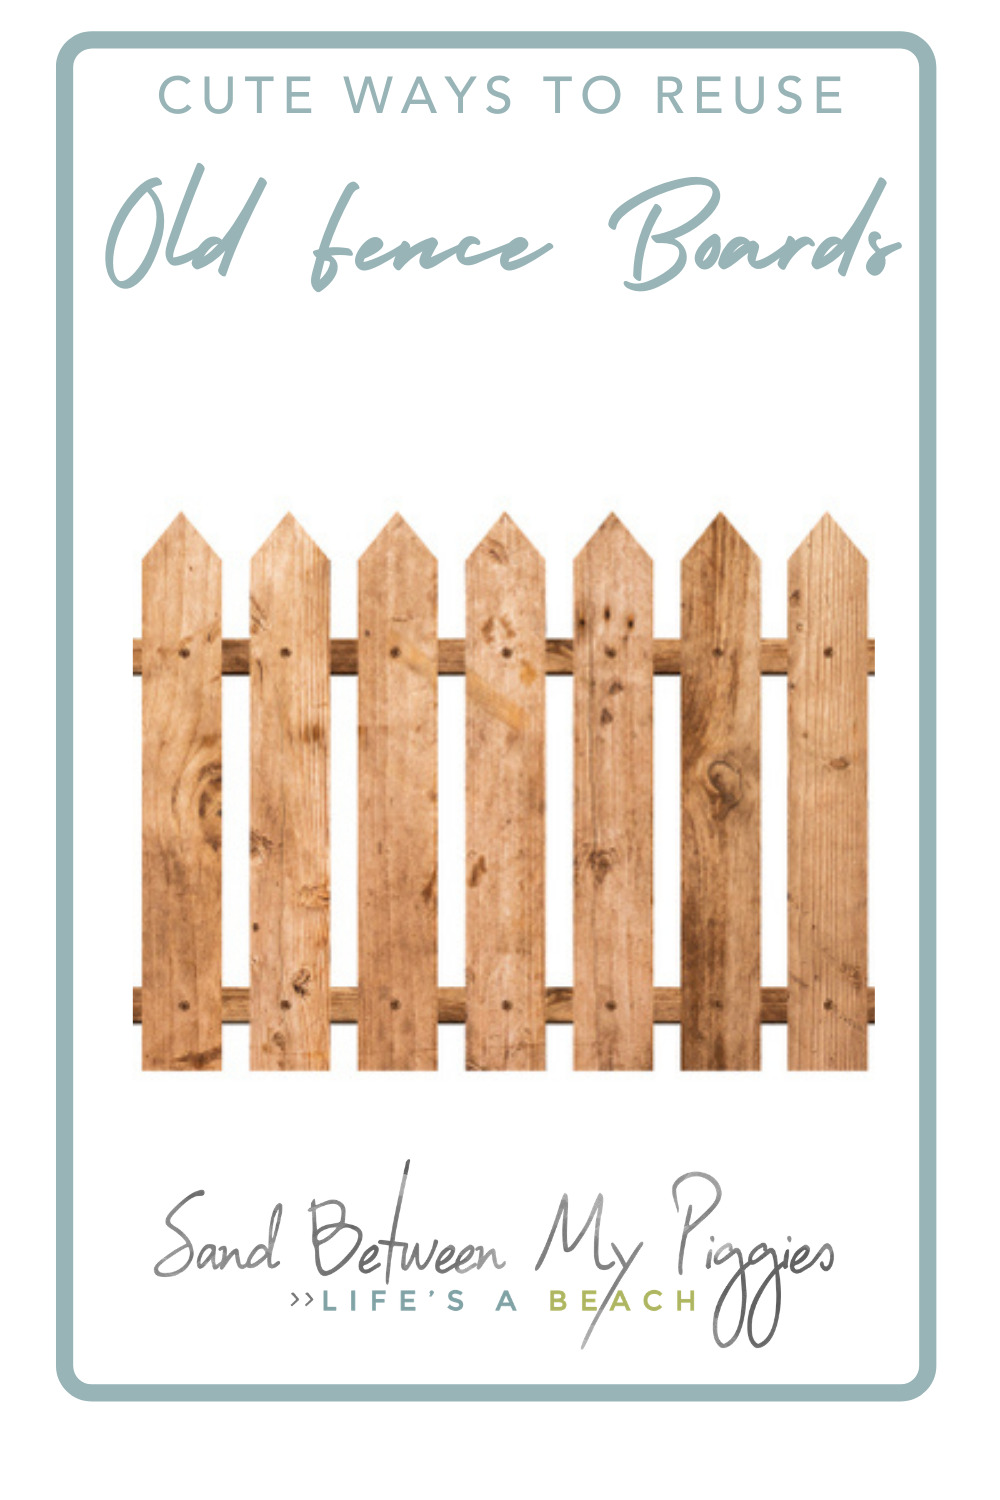 Sandbetweenmypiggies.com is the best place to find cozy, beachy DIY projects. Find creative ways to make things all on your own. Try out these creative ideas for repurposing old fence boards!